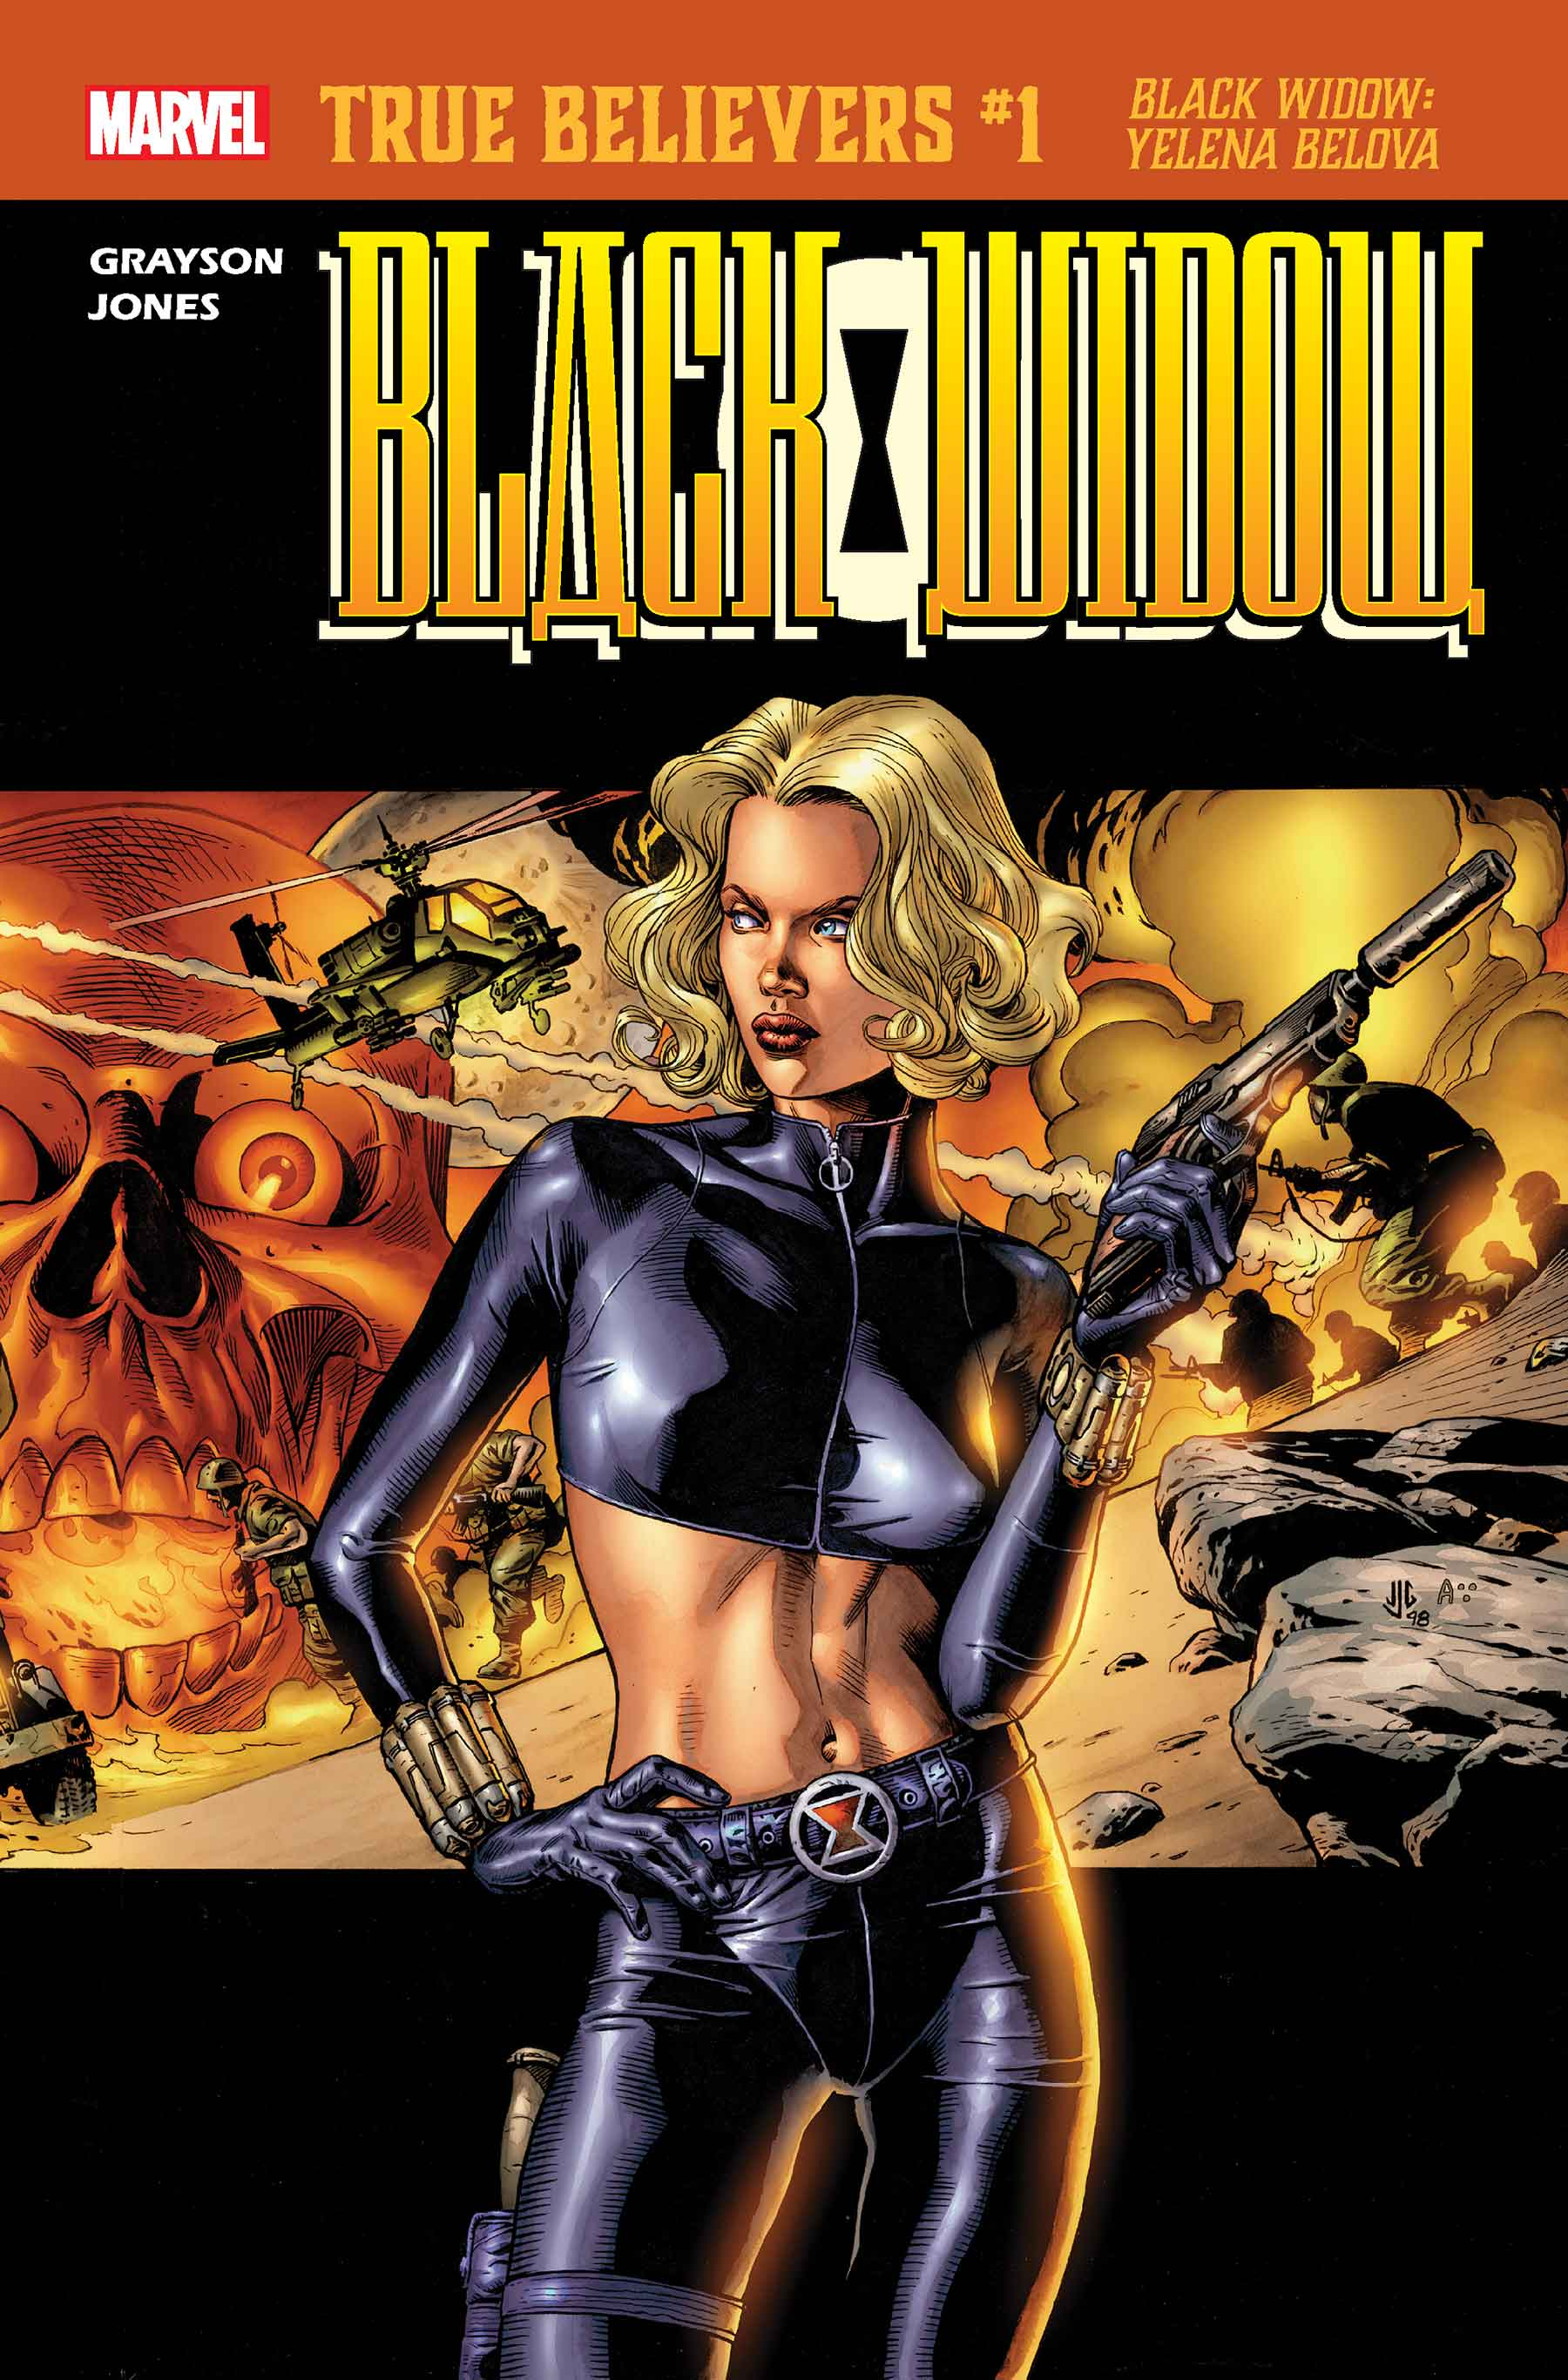 True Believers: Black Widow - Yelena Belova (2020) #1